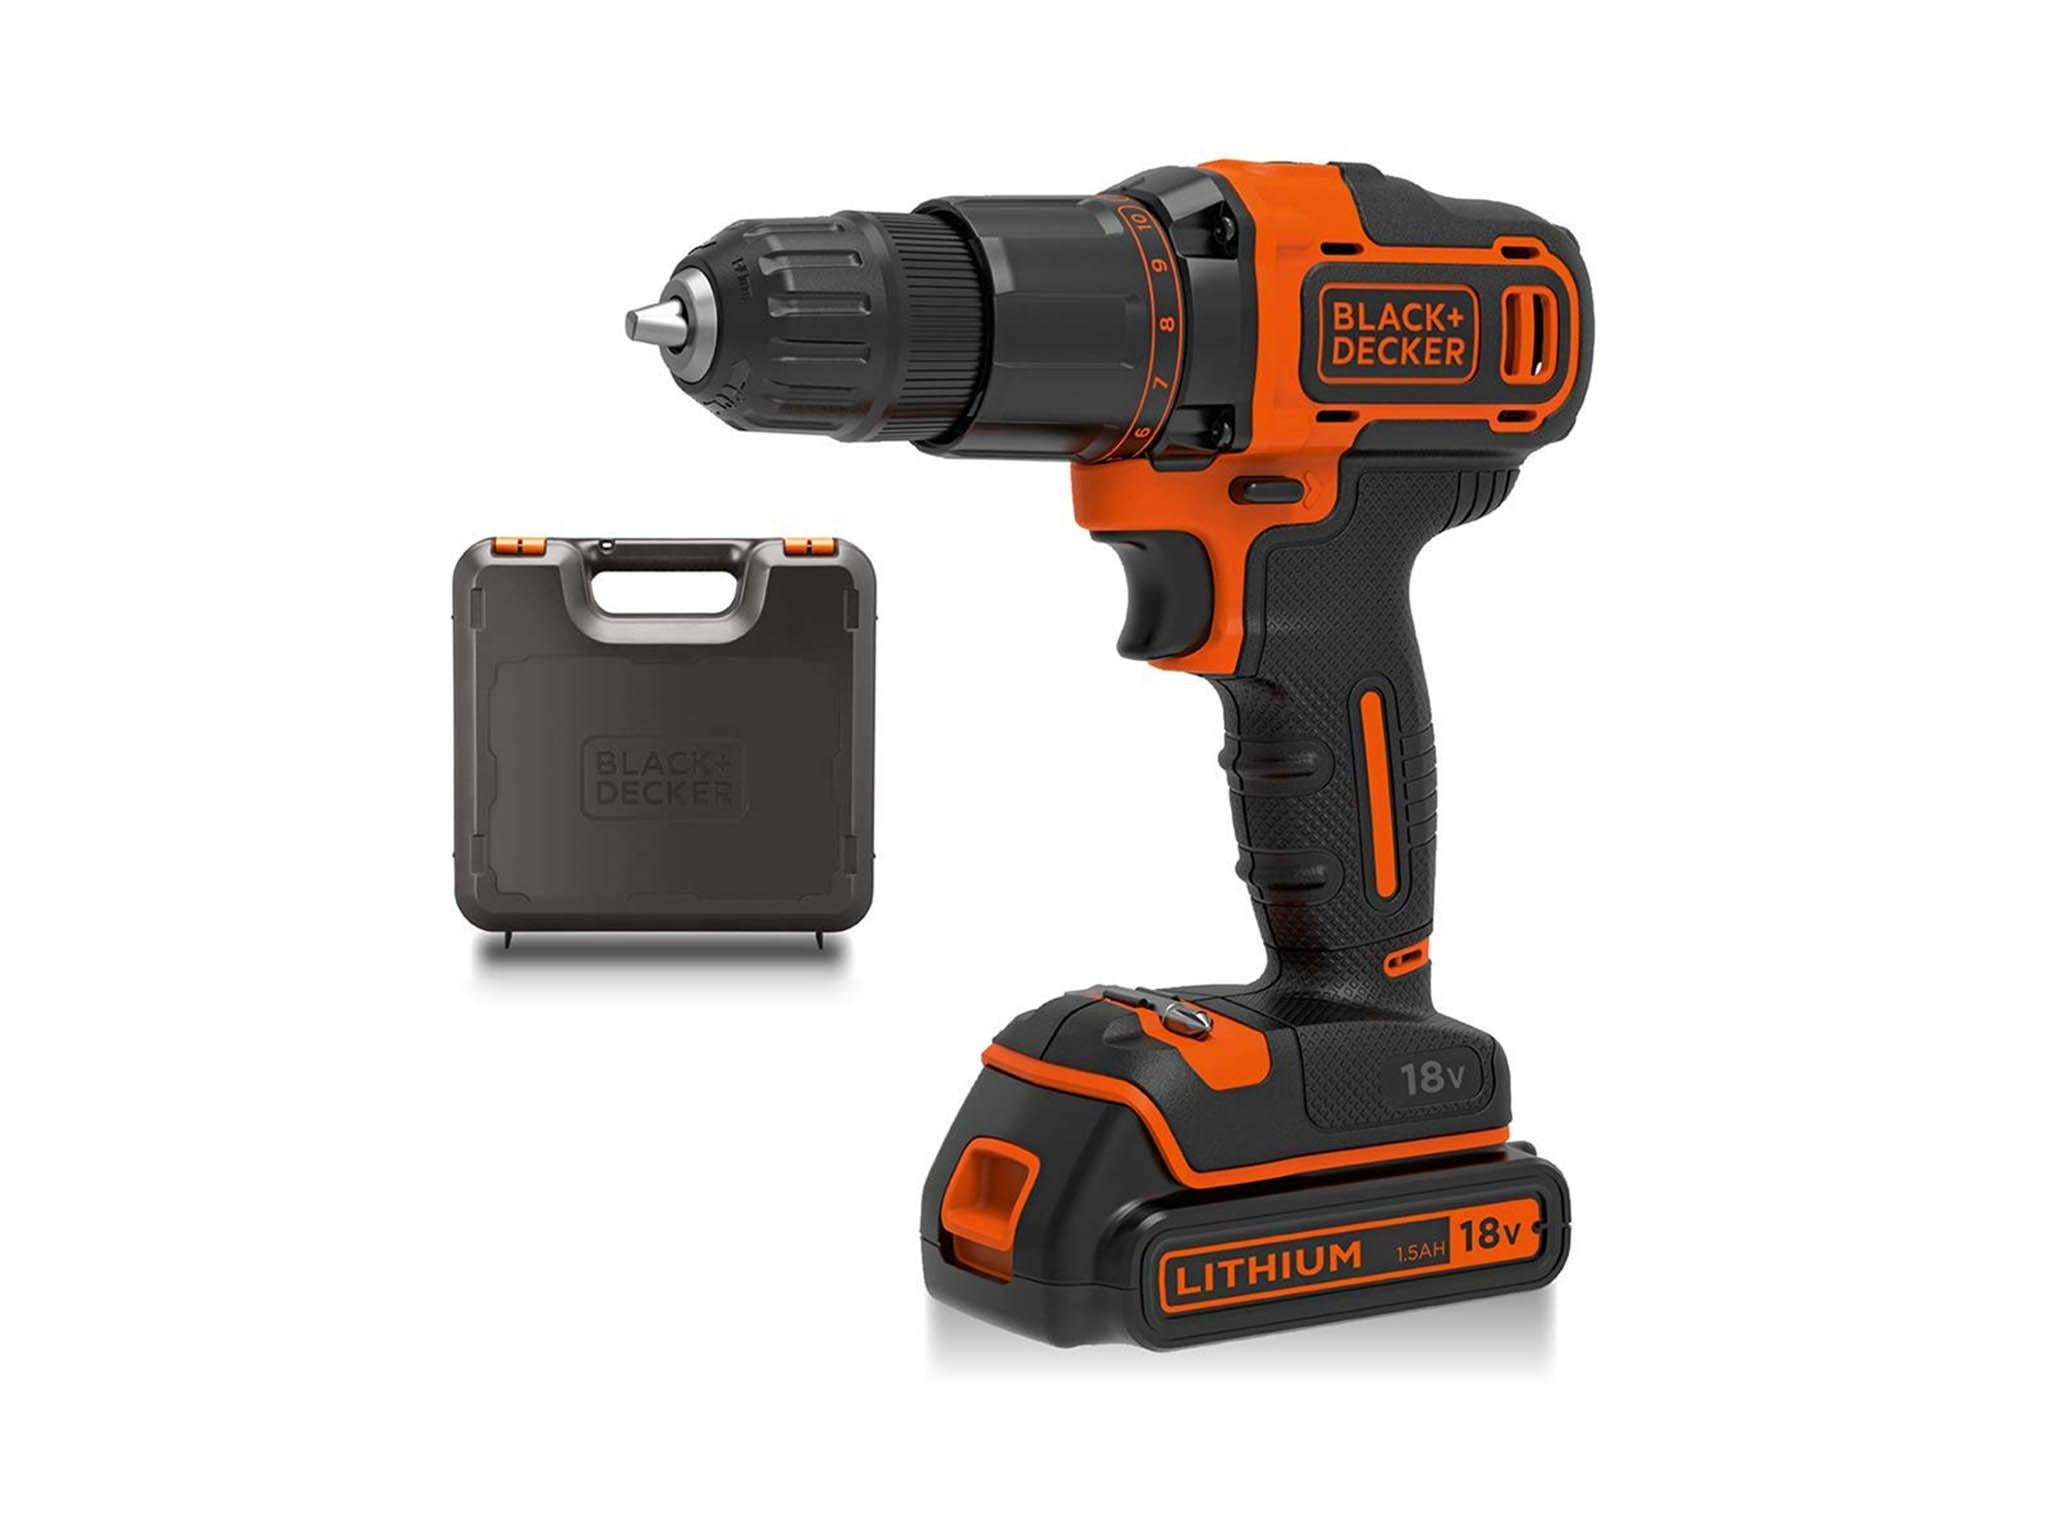 Best cordless drills for DIY in home and garden